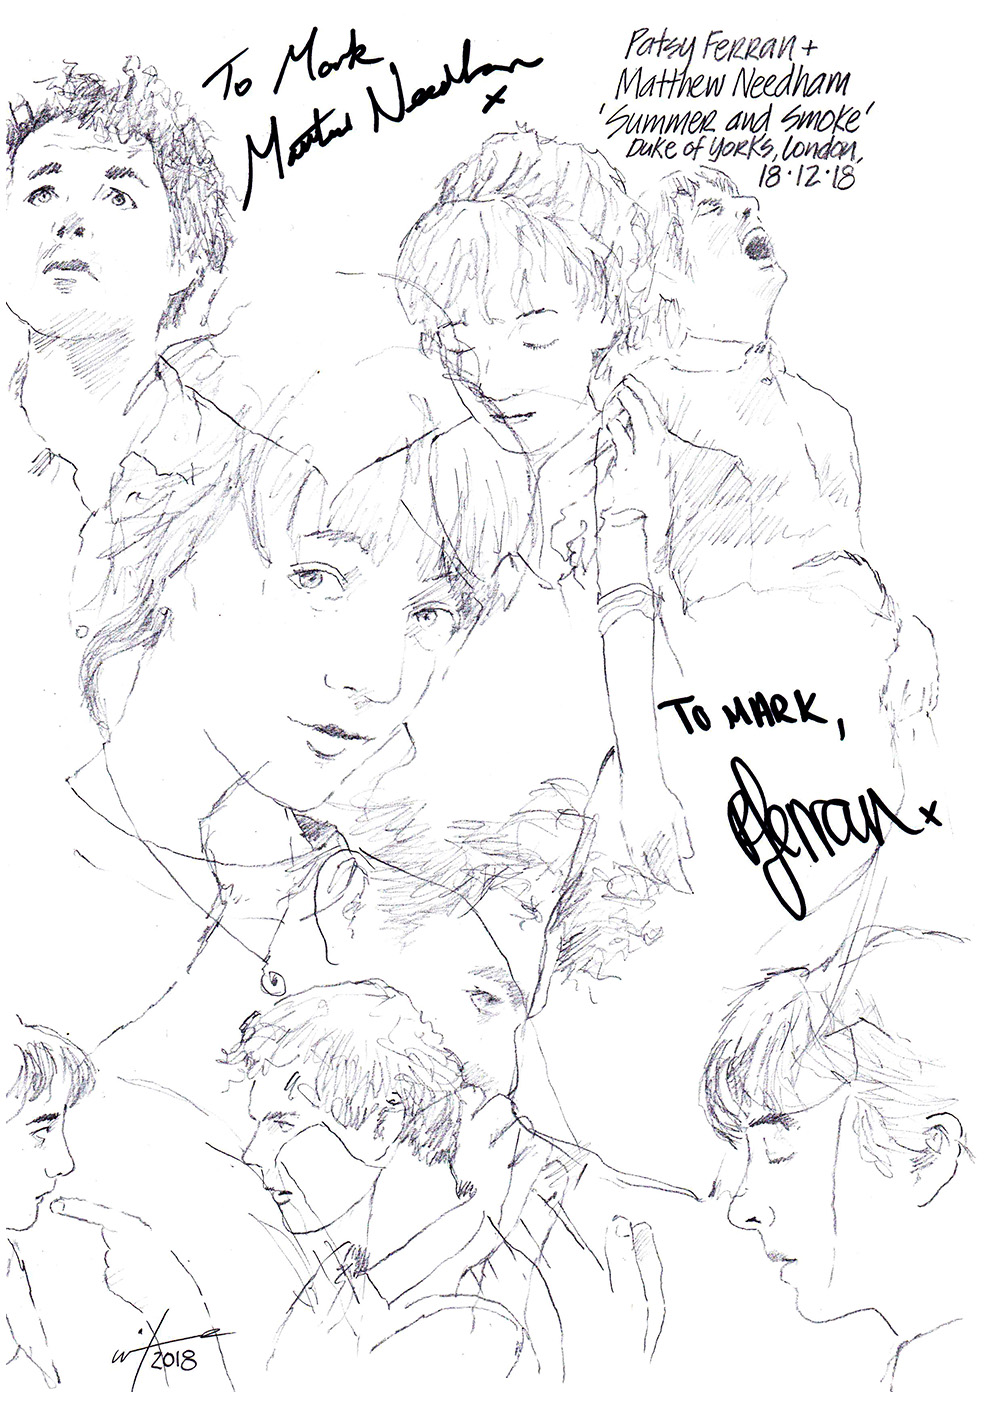 Autographed drawing of Patsy Ferran and Matthew Needham in Summer and Smoke at theDuke of York's Theatre on London's West End